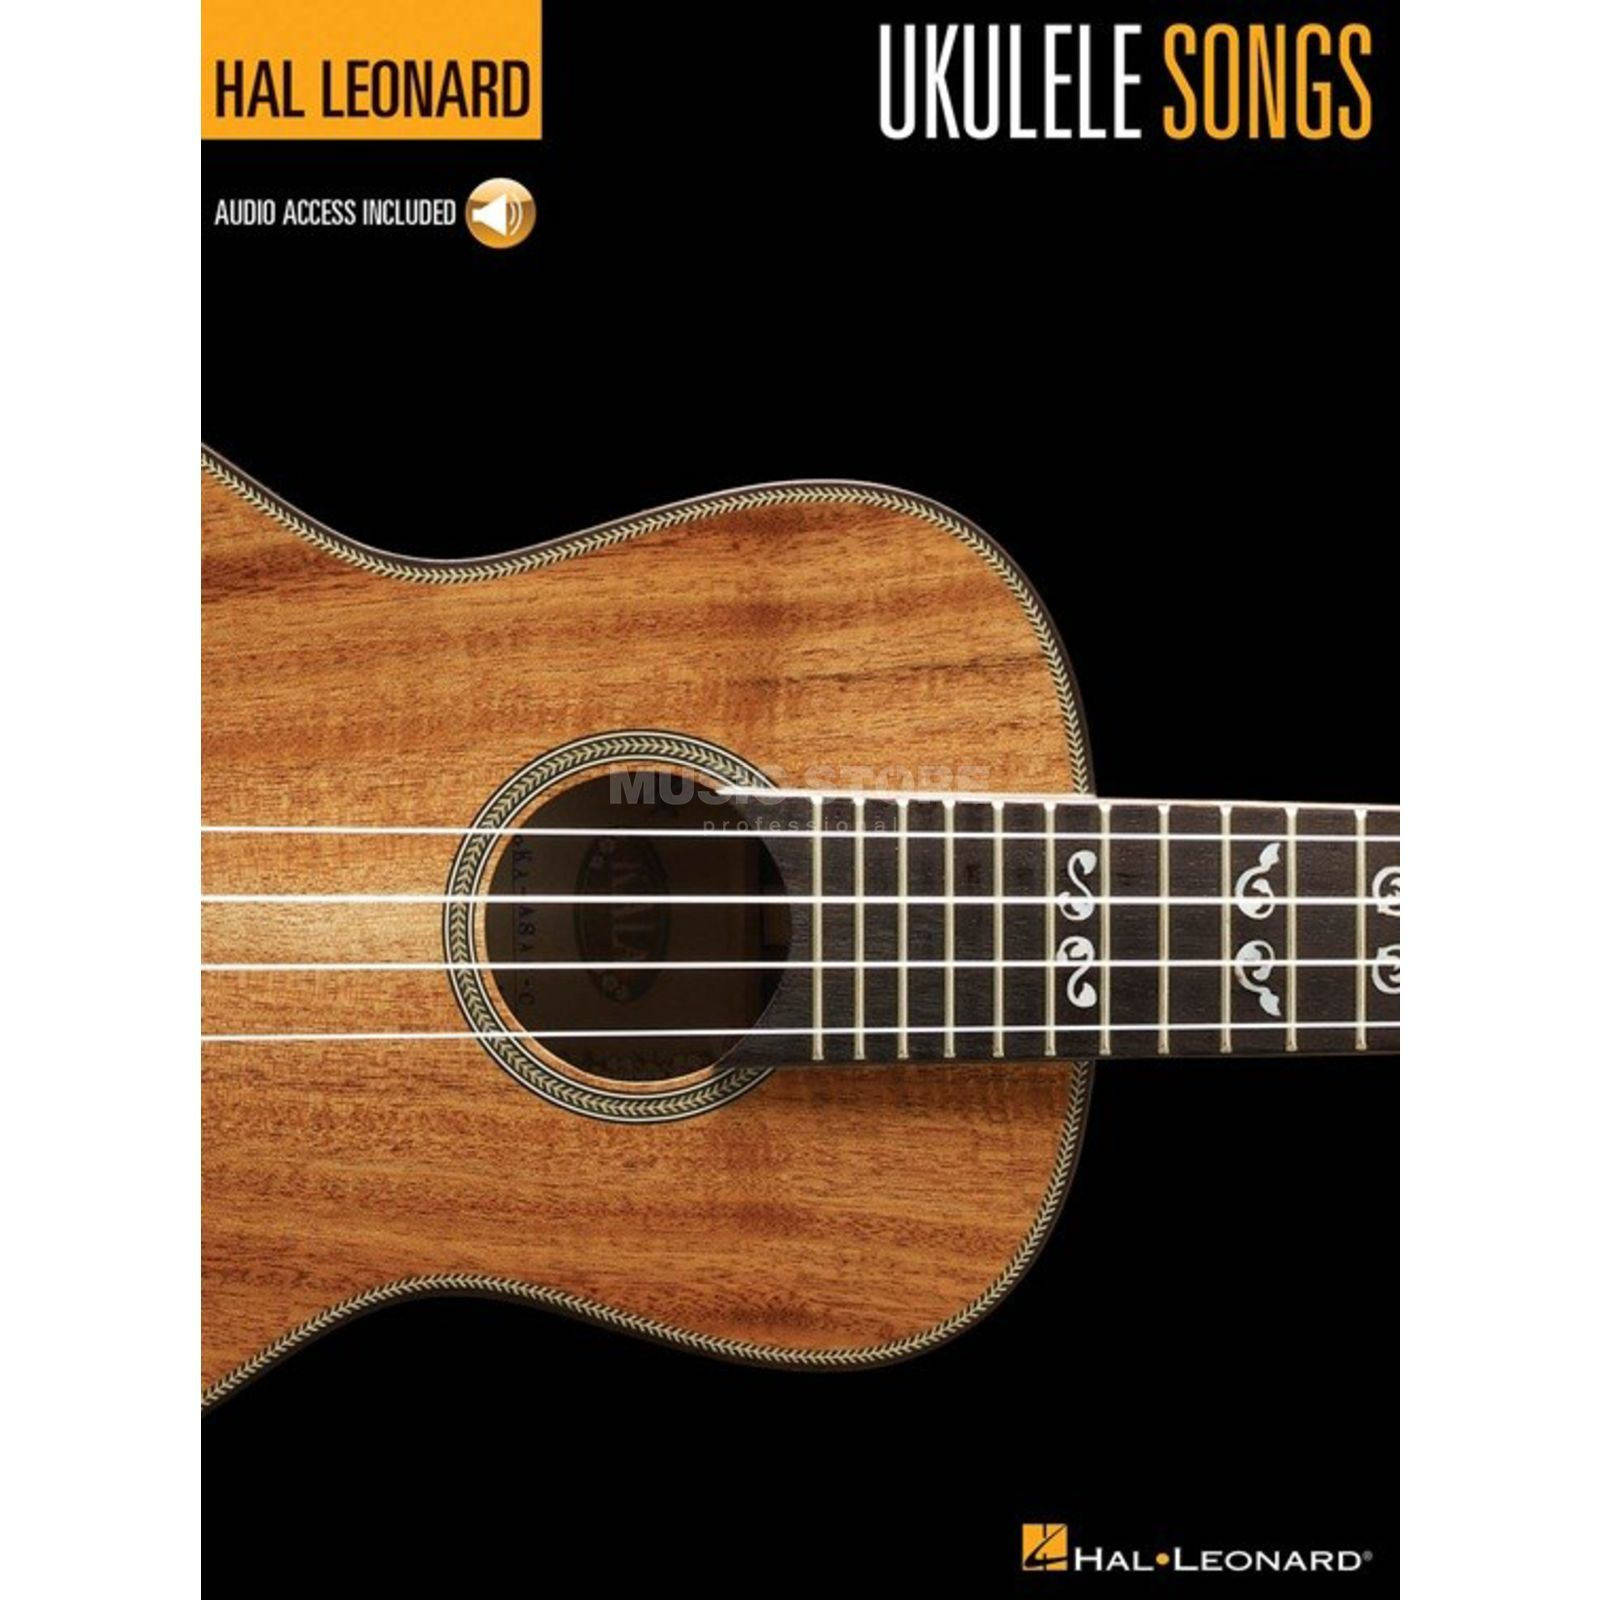 Hal Leonard Ukulele Method: Songs Produktbild